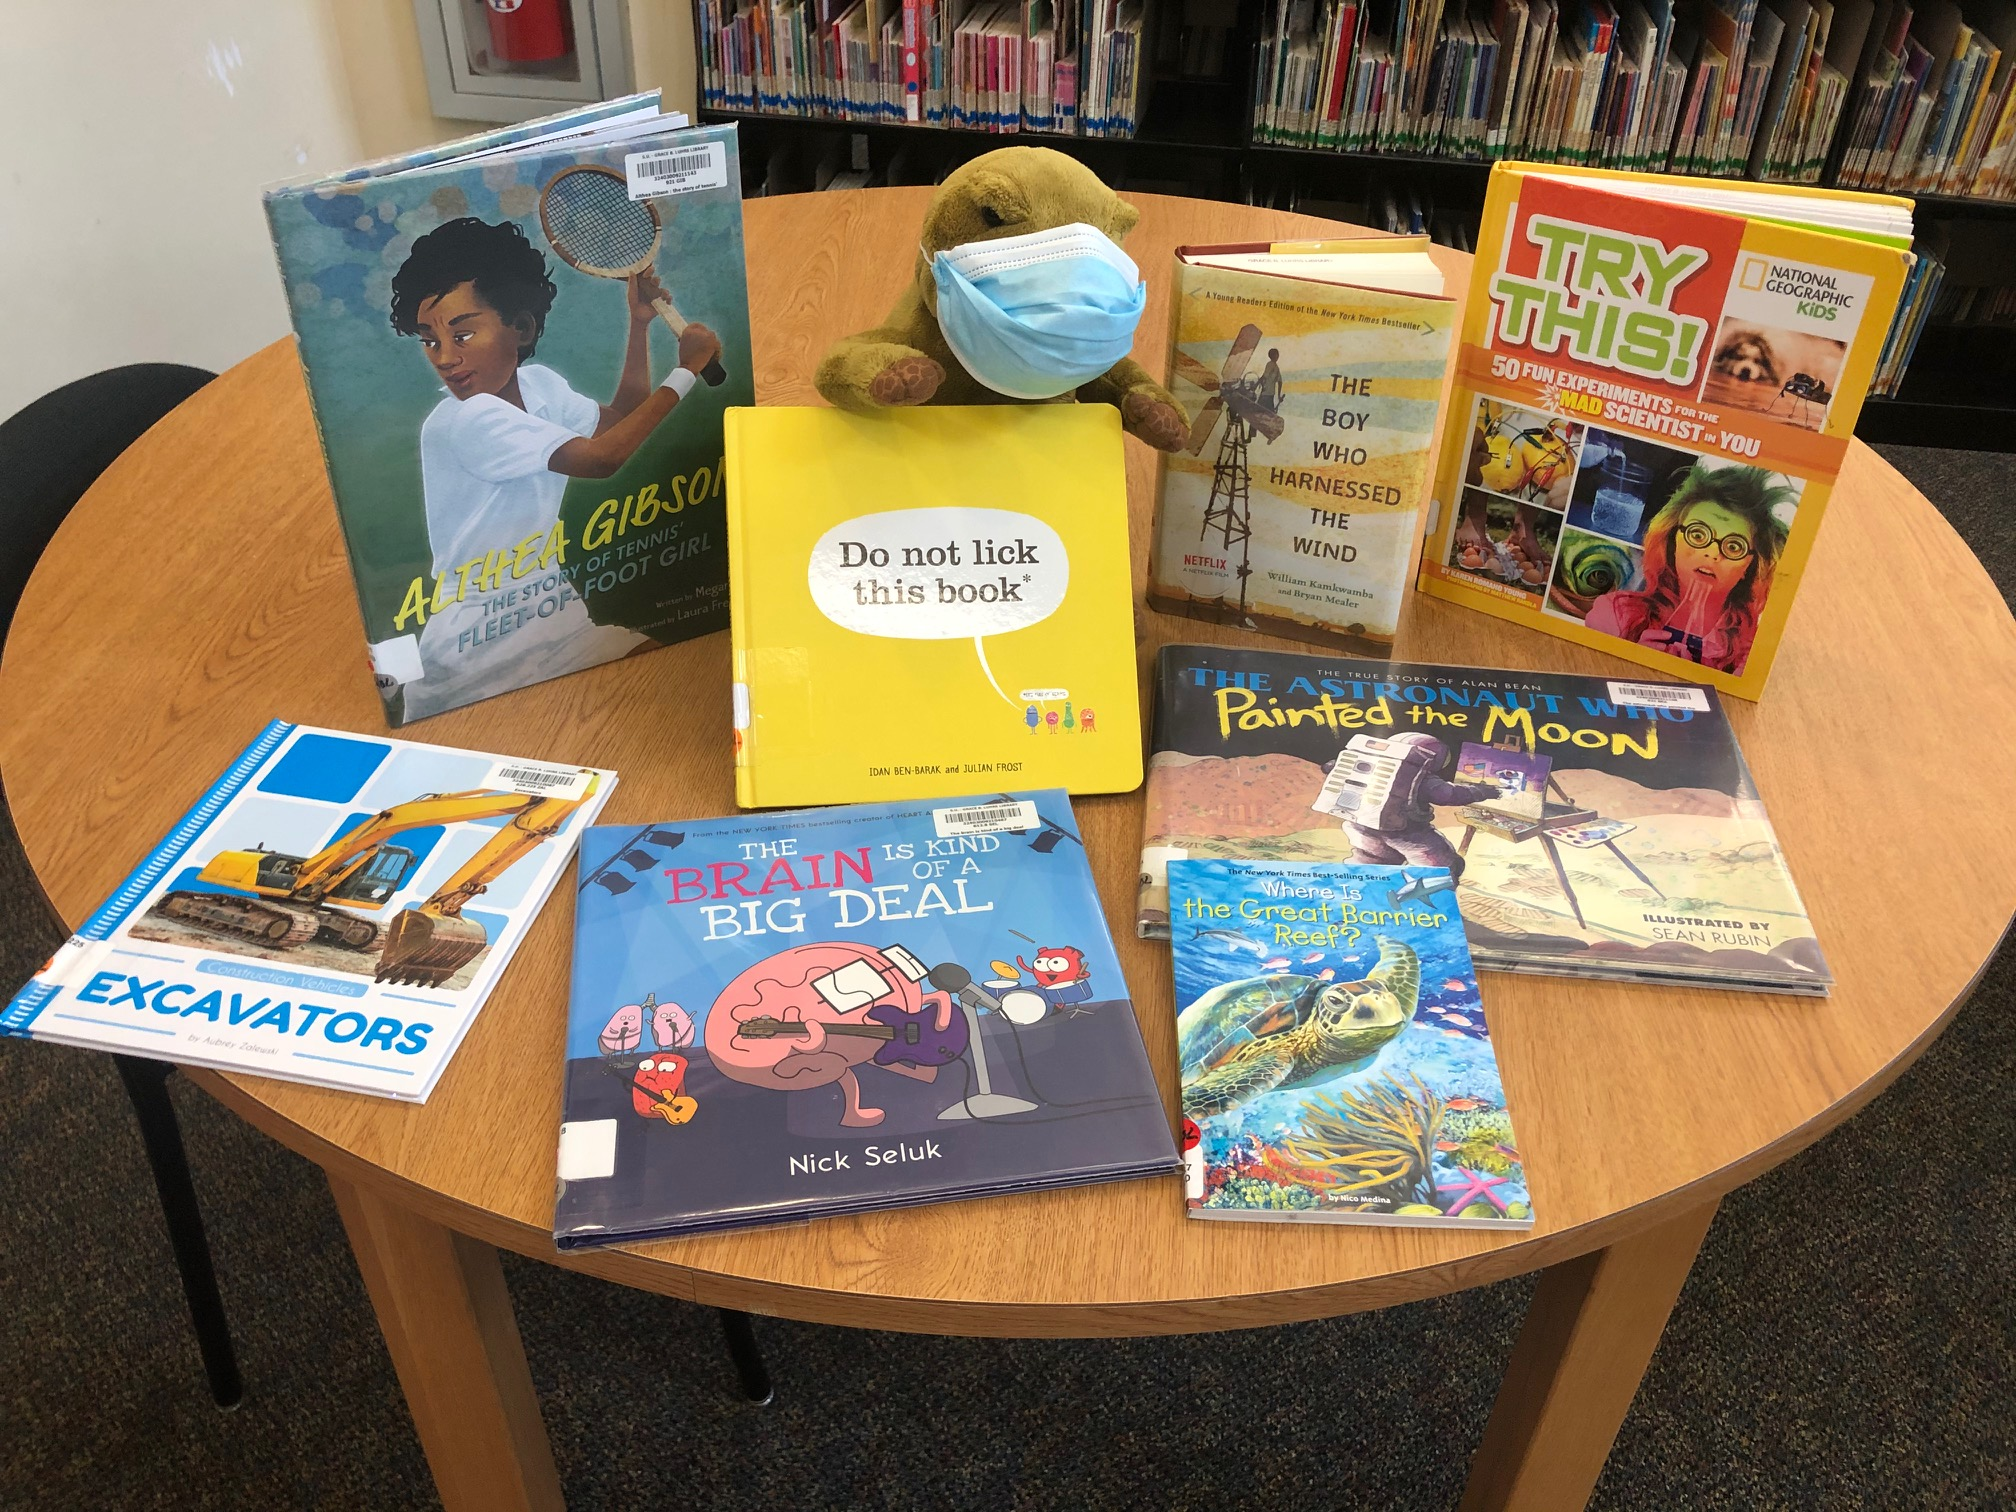 Dino suggests nonfiction books for check out